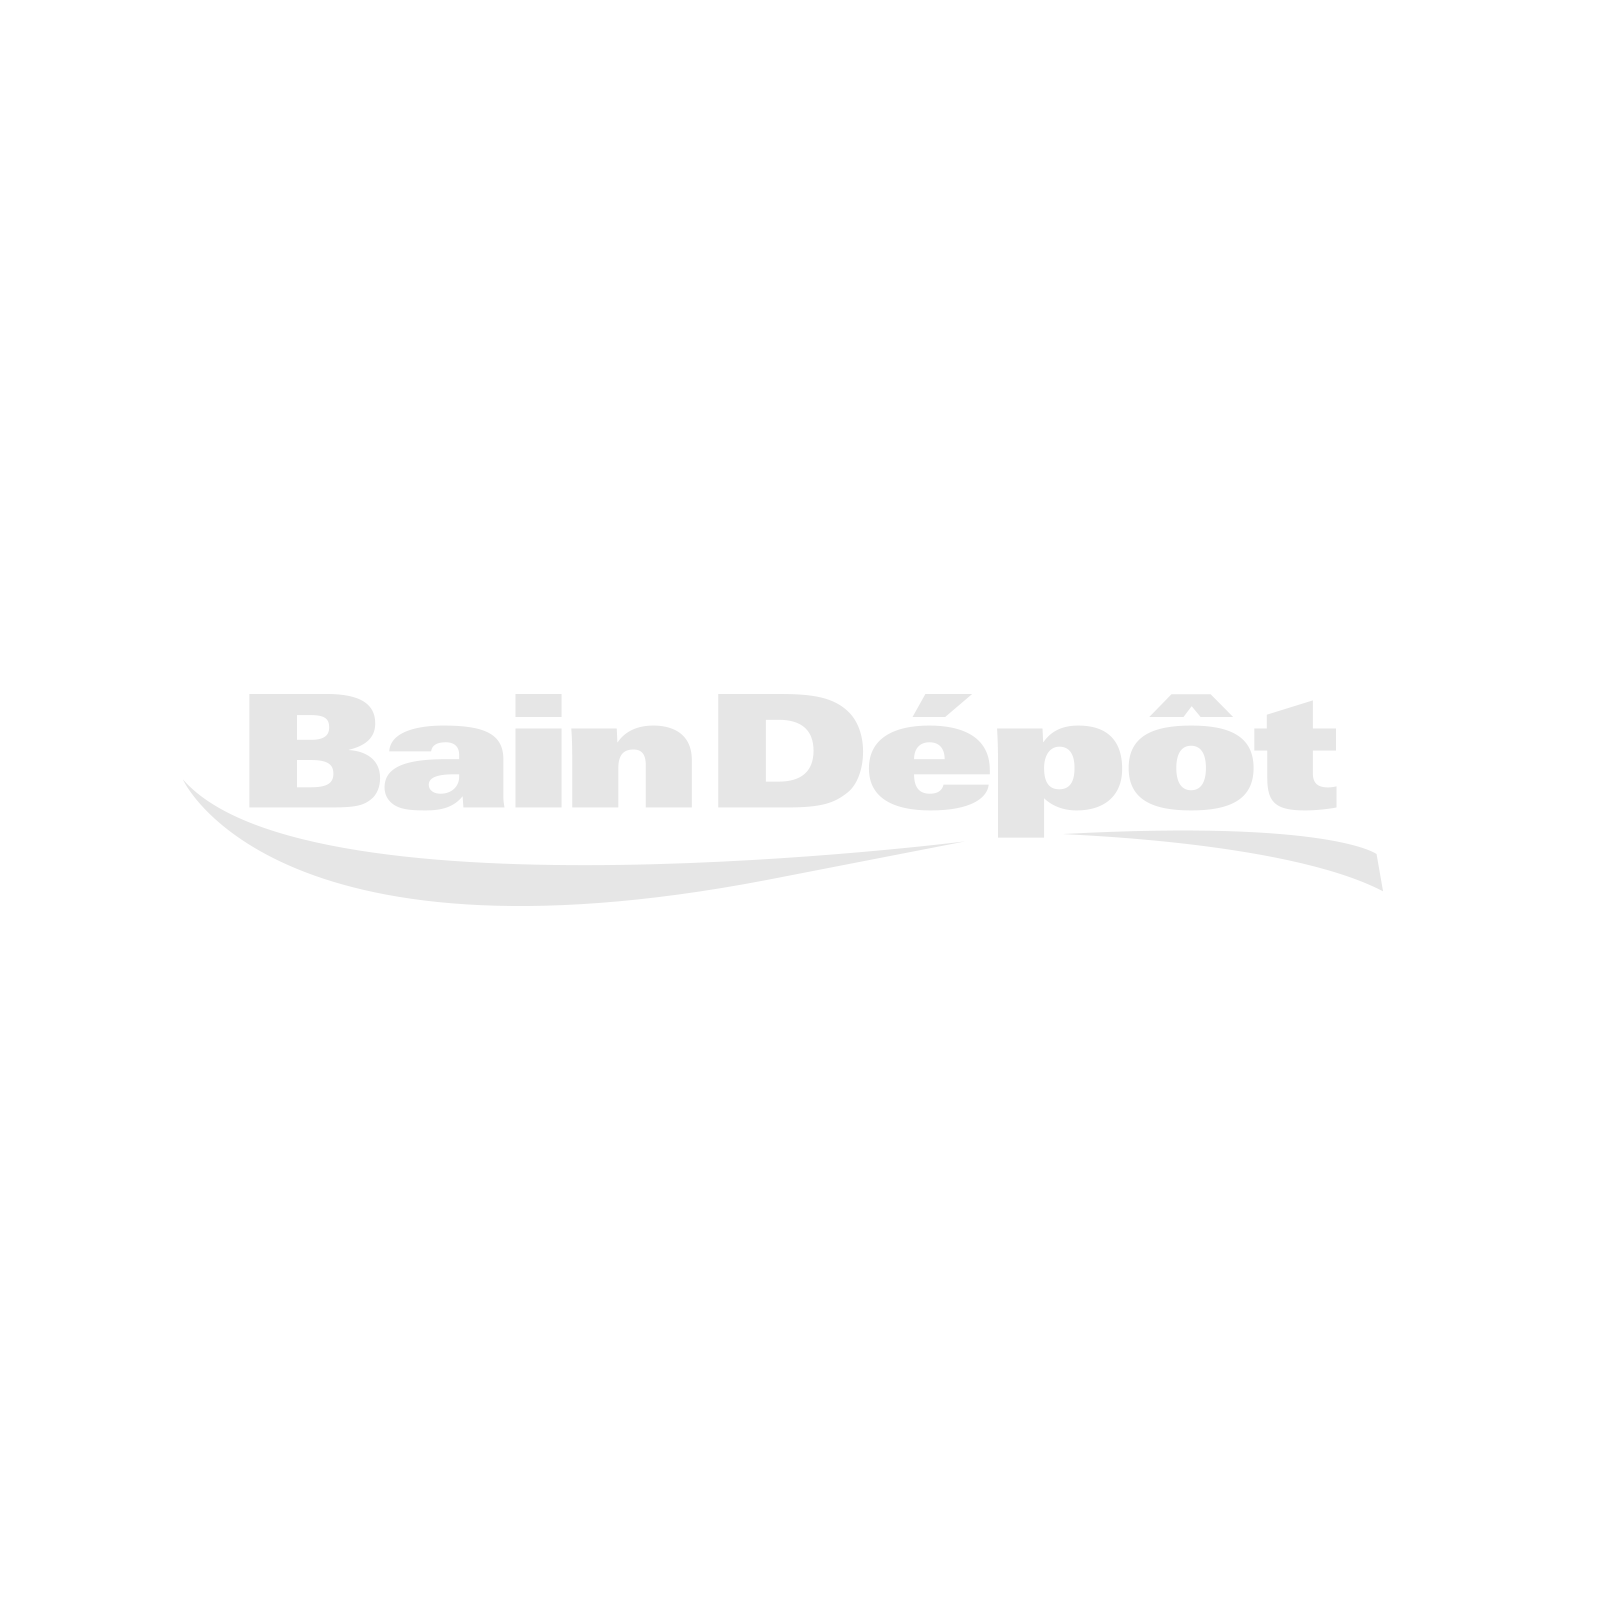 Chrome and white wall-mount or freestanding tub faucet with cross handles